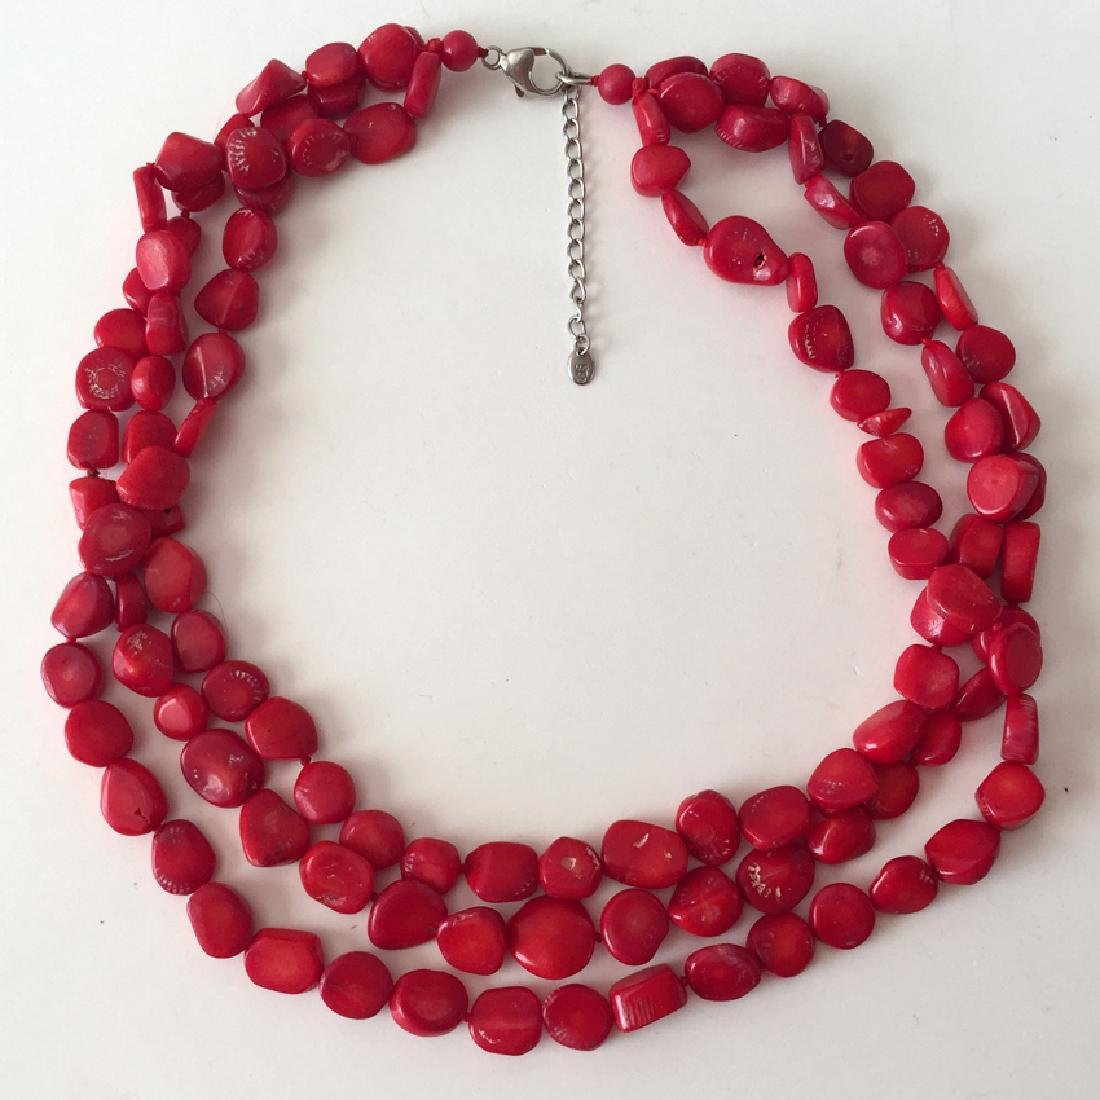 Three strands of knotted genuine red coral roots free